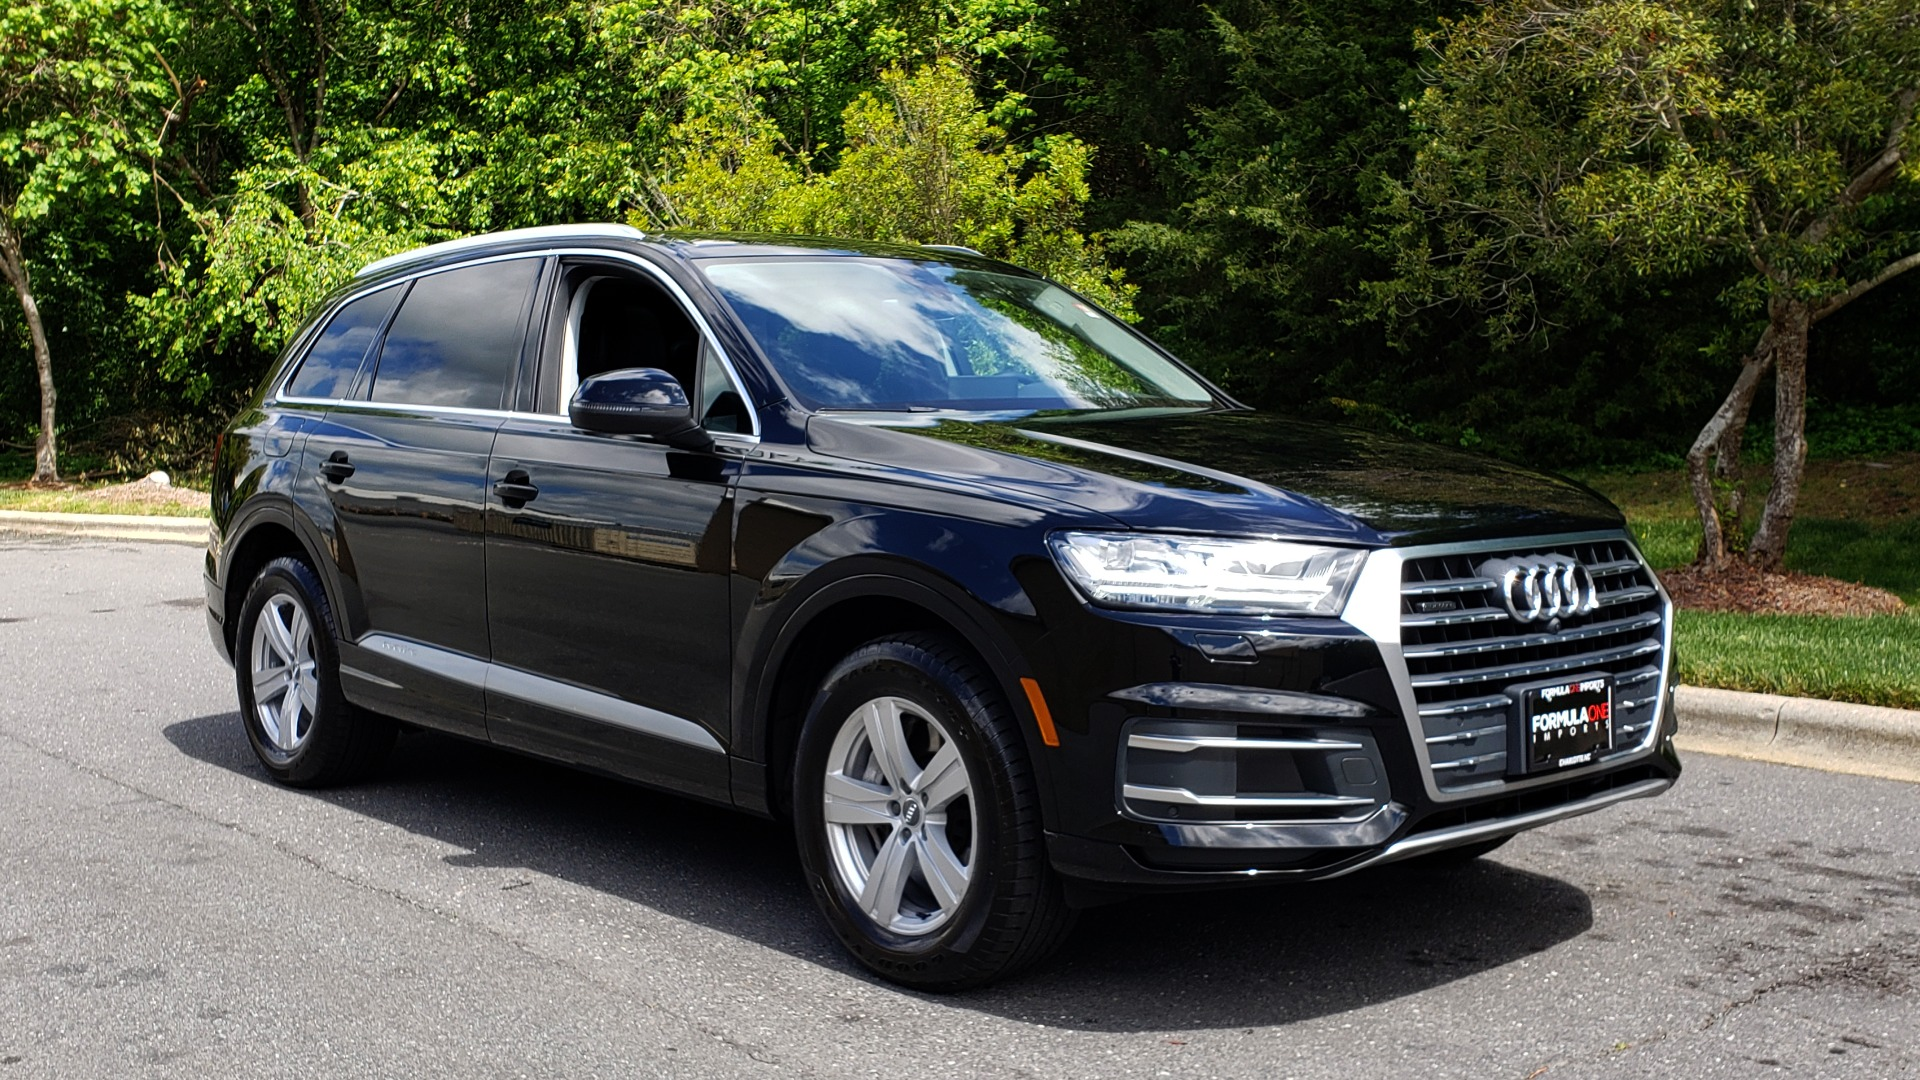 Used 2017 Audi Q7 PREMIUM PLUS / VISION PKG / NAV / PANO-ROOF / 3-ROW / REARVIEW for sale Sold at Formula Imports in Charlotte NC 28227 4